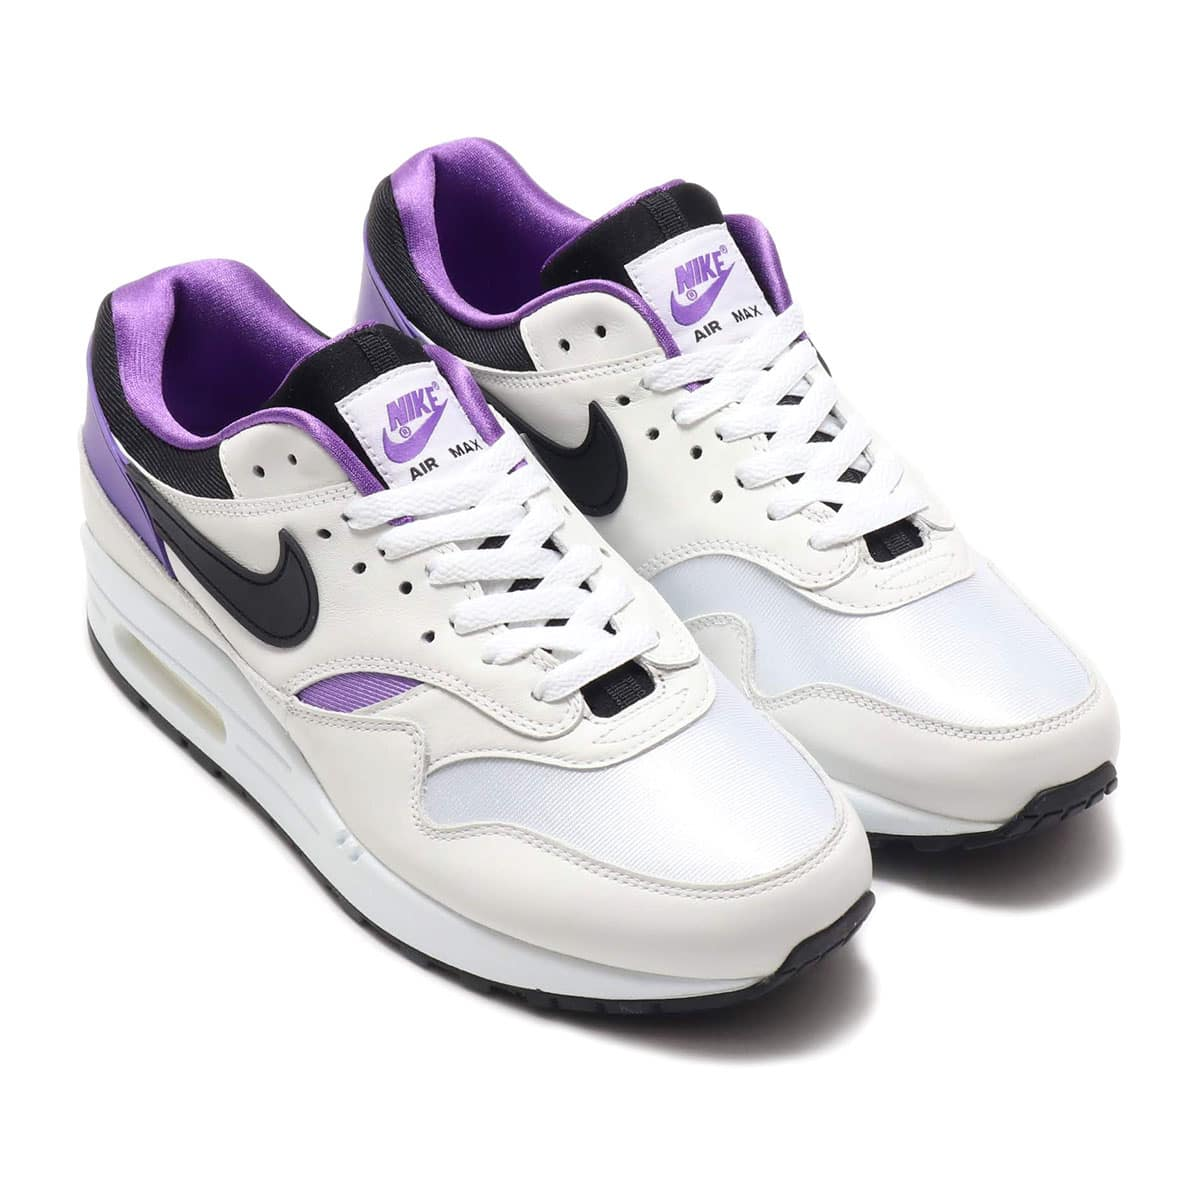 NIKE AIR MAX 1 DNA CH.1 WHITE/BLACK-PURPLE PUNCH 20SP-S_photo_large